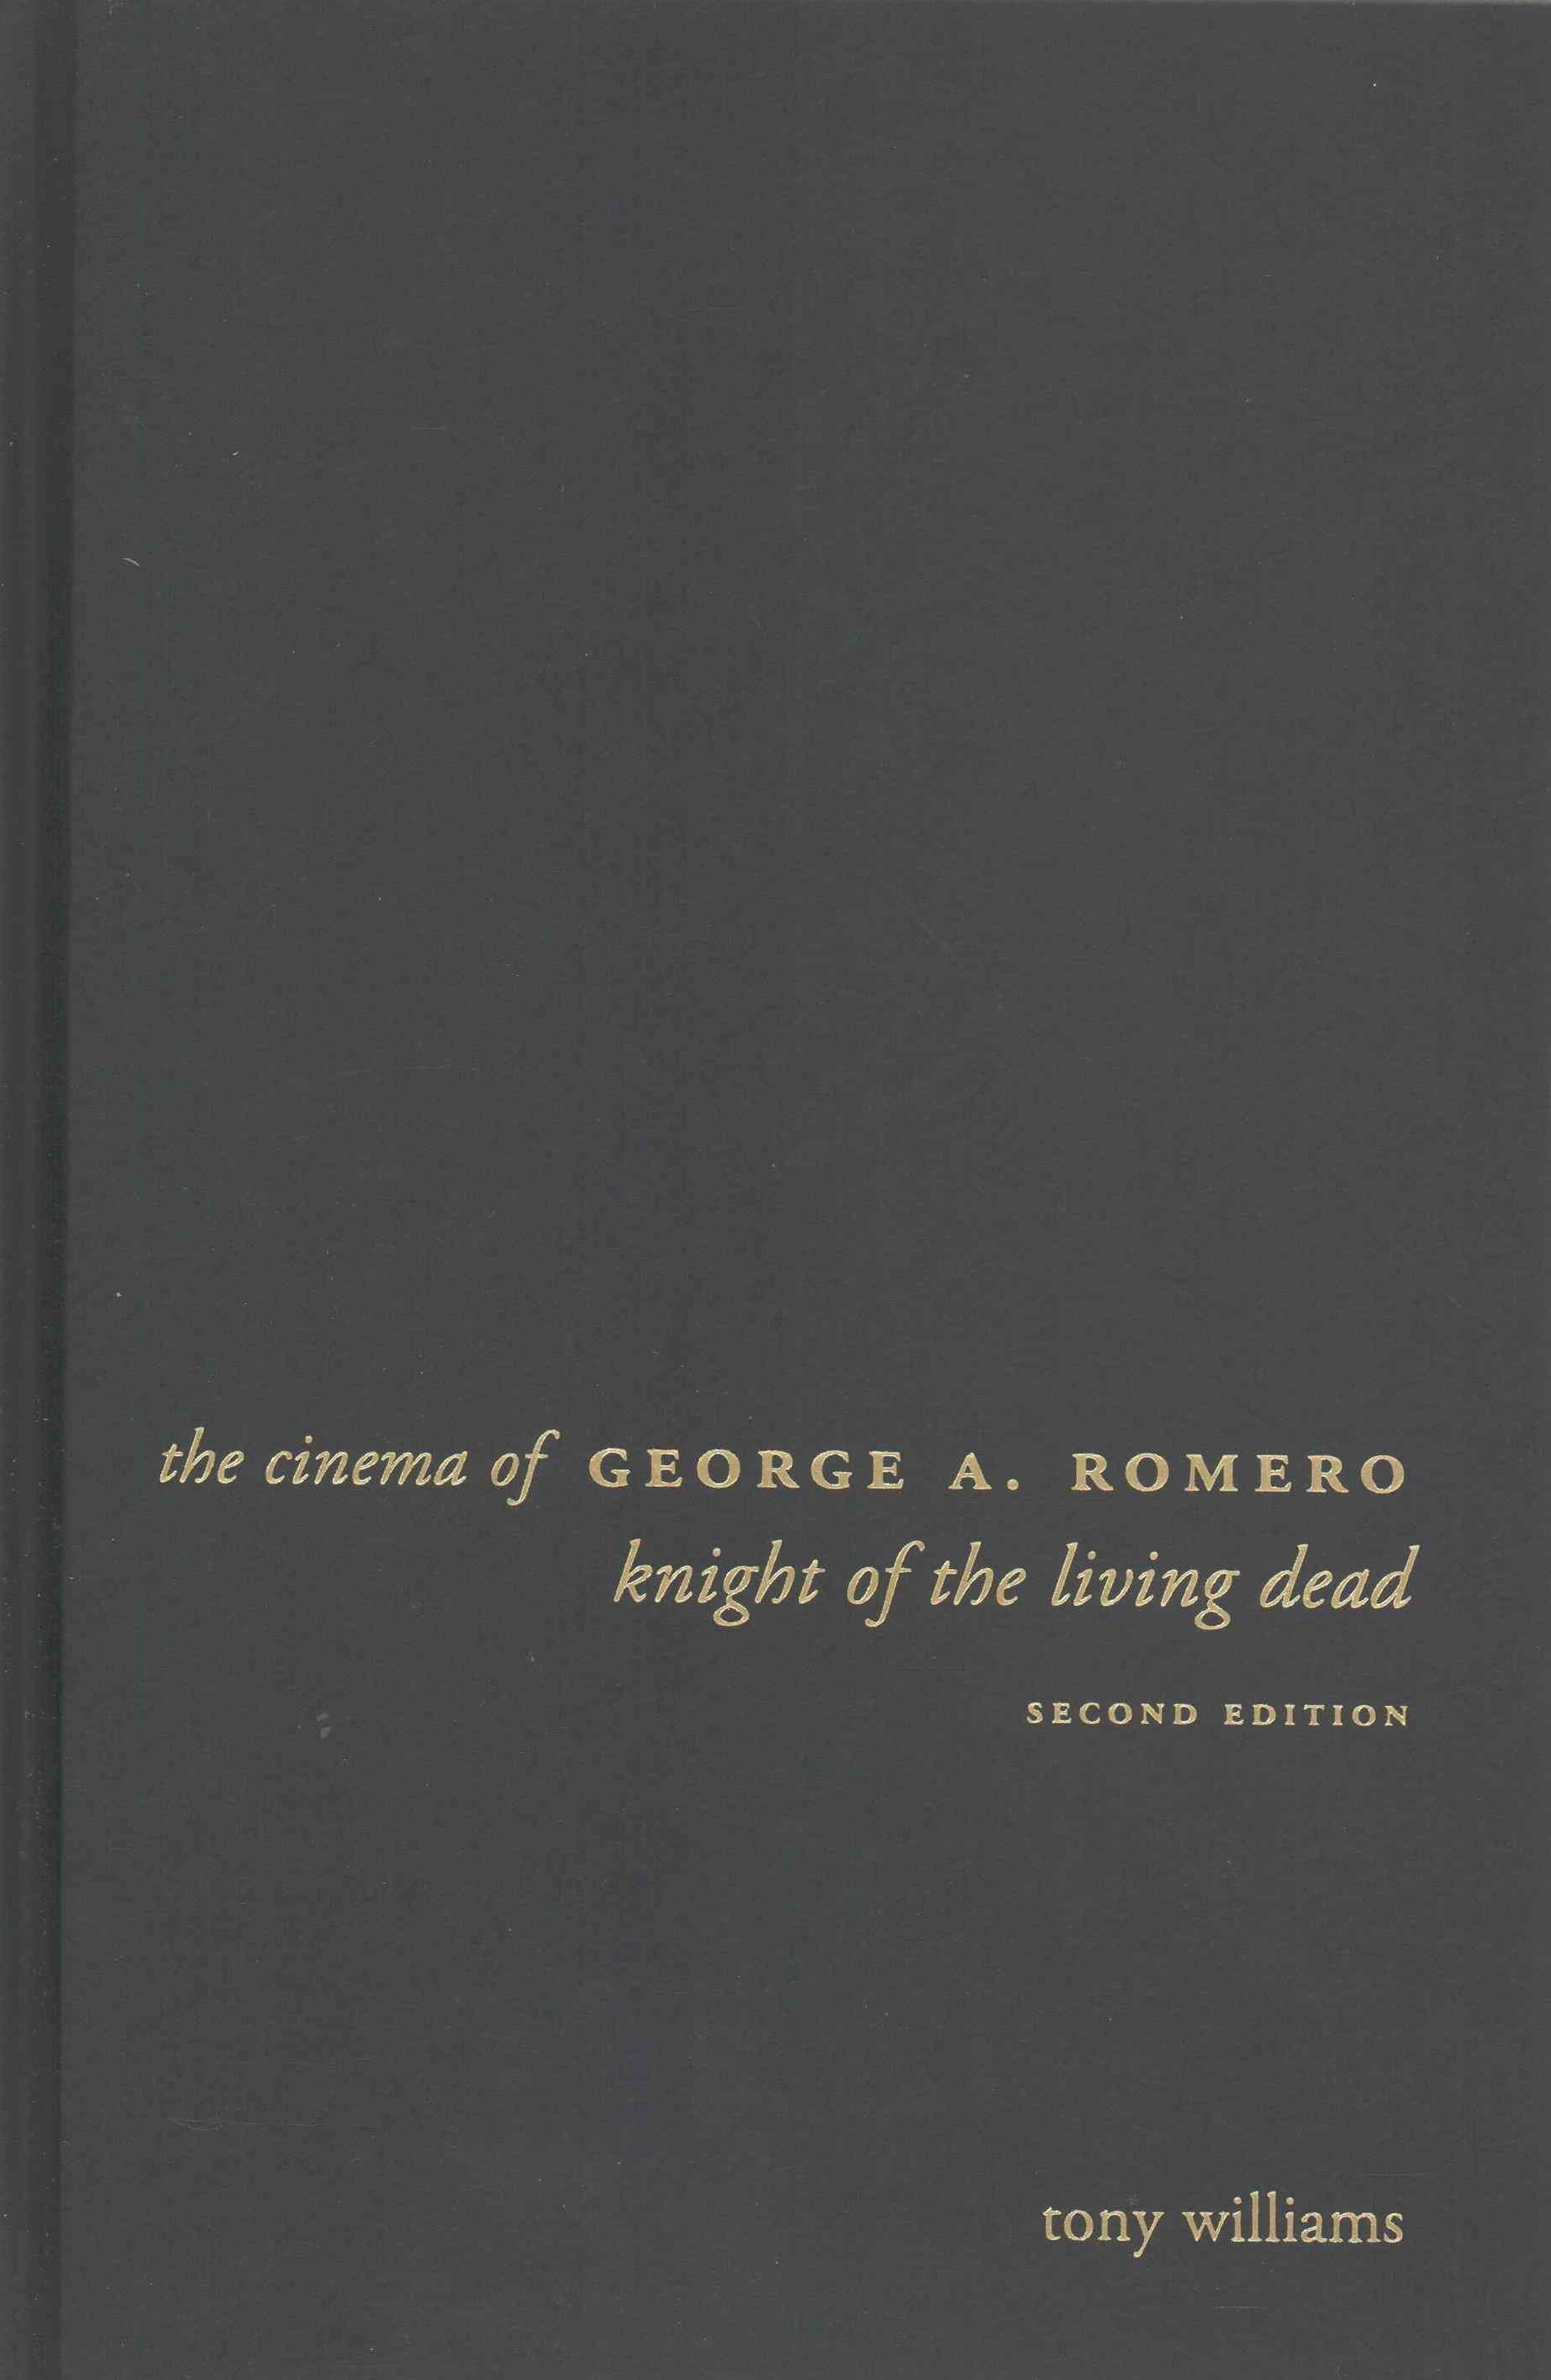 Cinema of George A. Romero